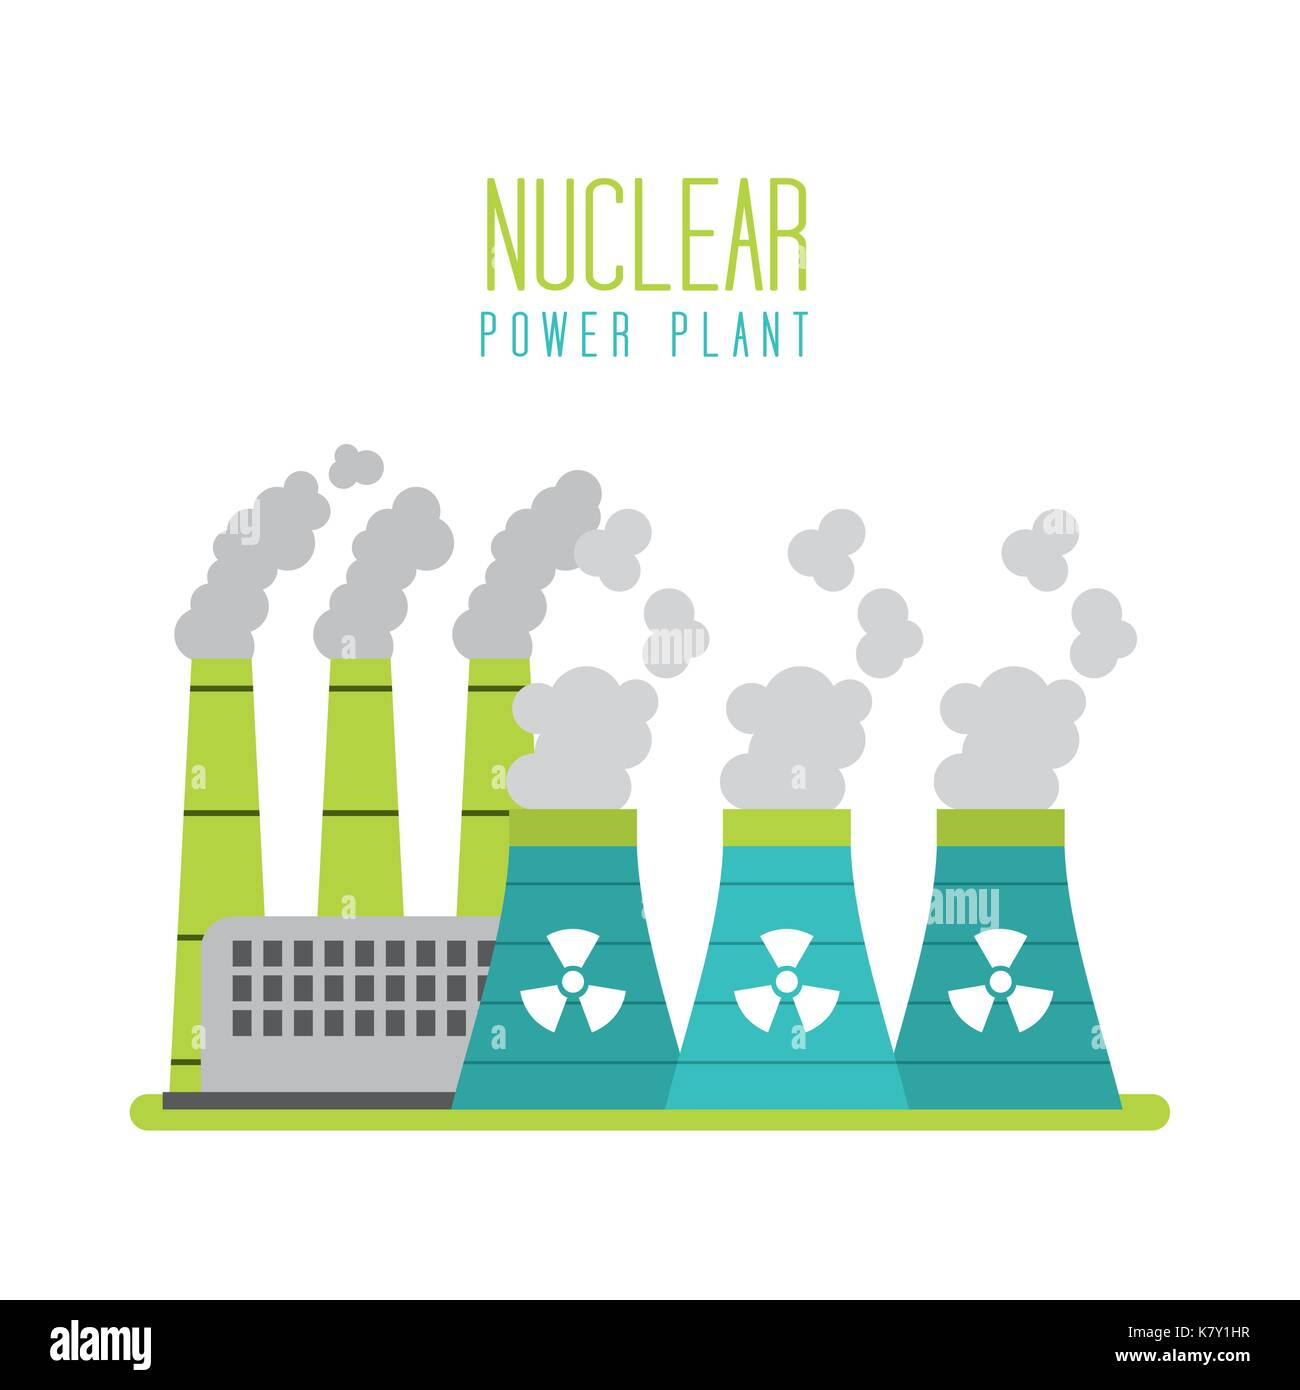 nuclear power plant energy station generation - Stock Image